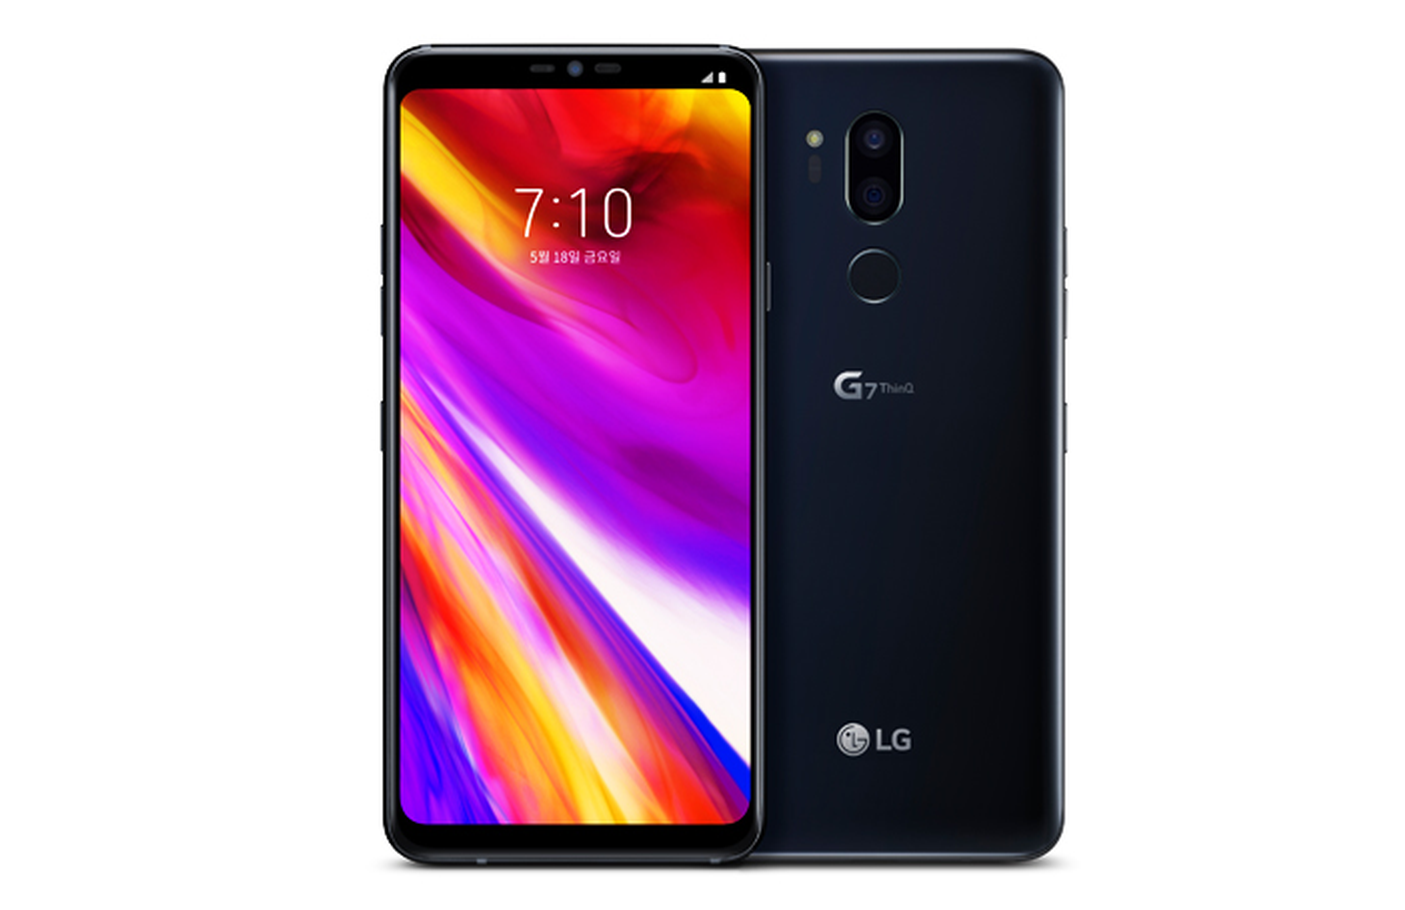 LG G7 ThinQ gets Pie beta